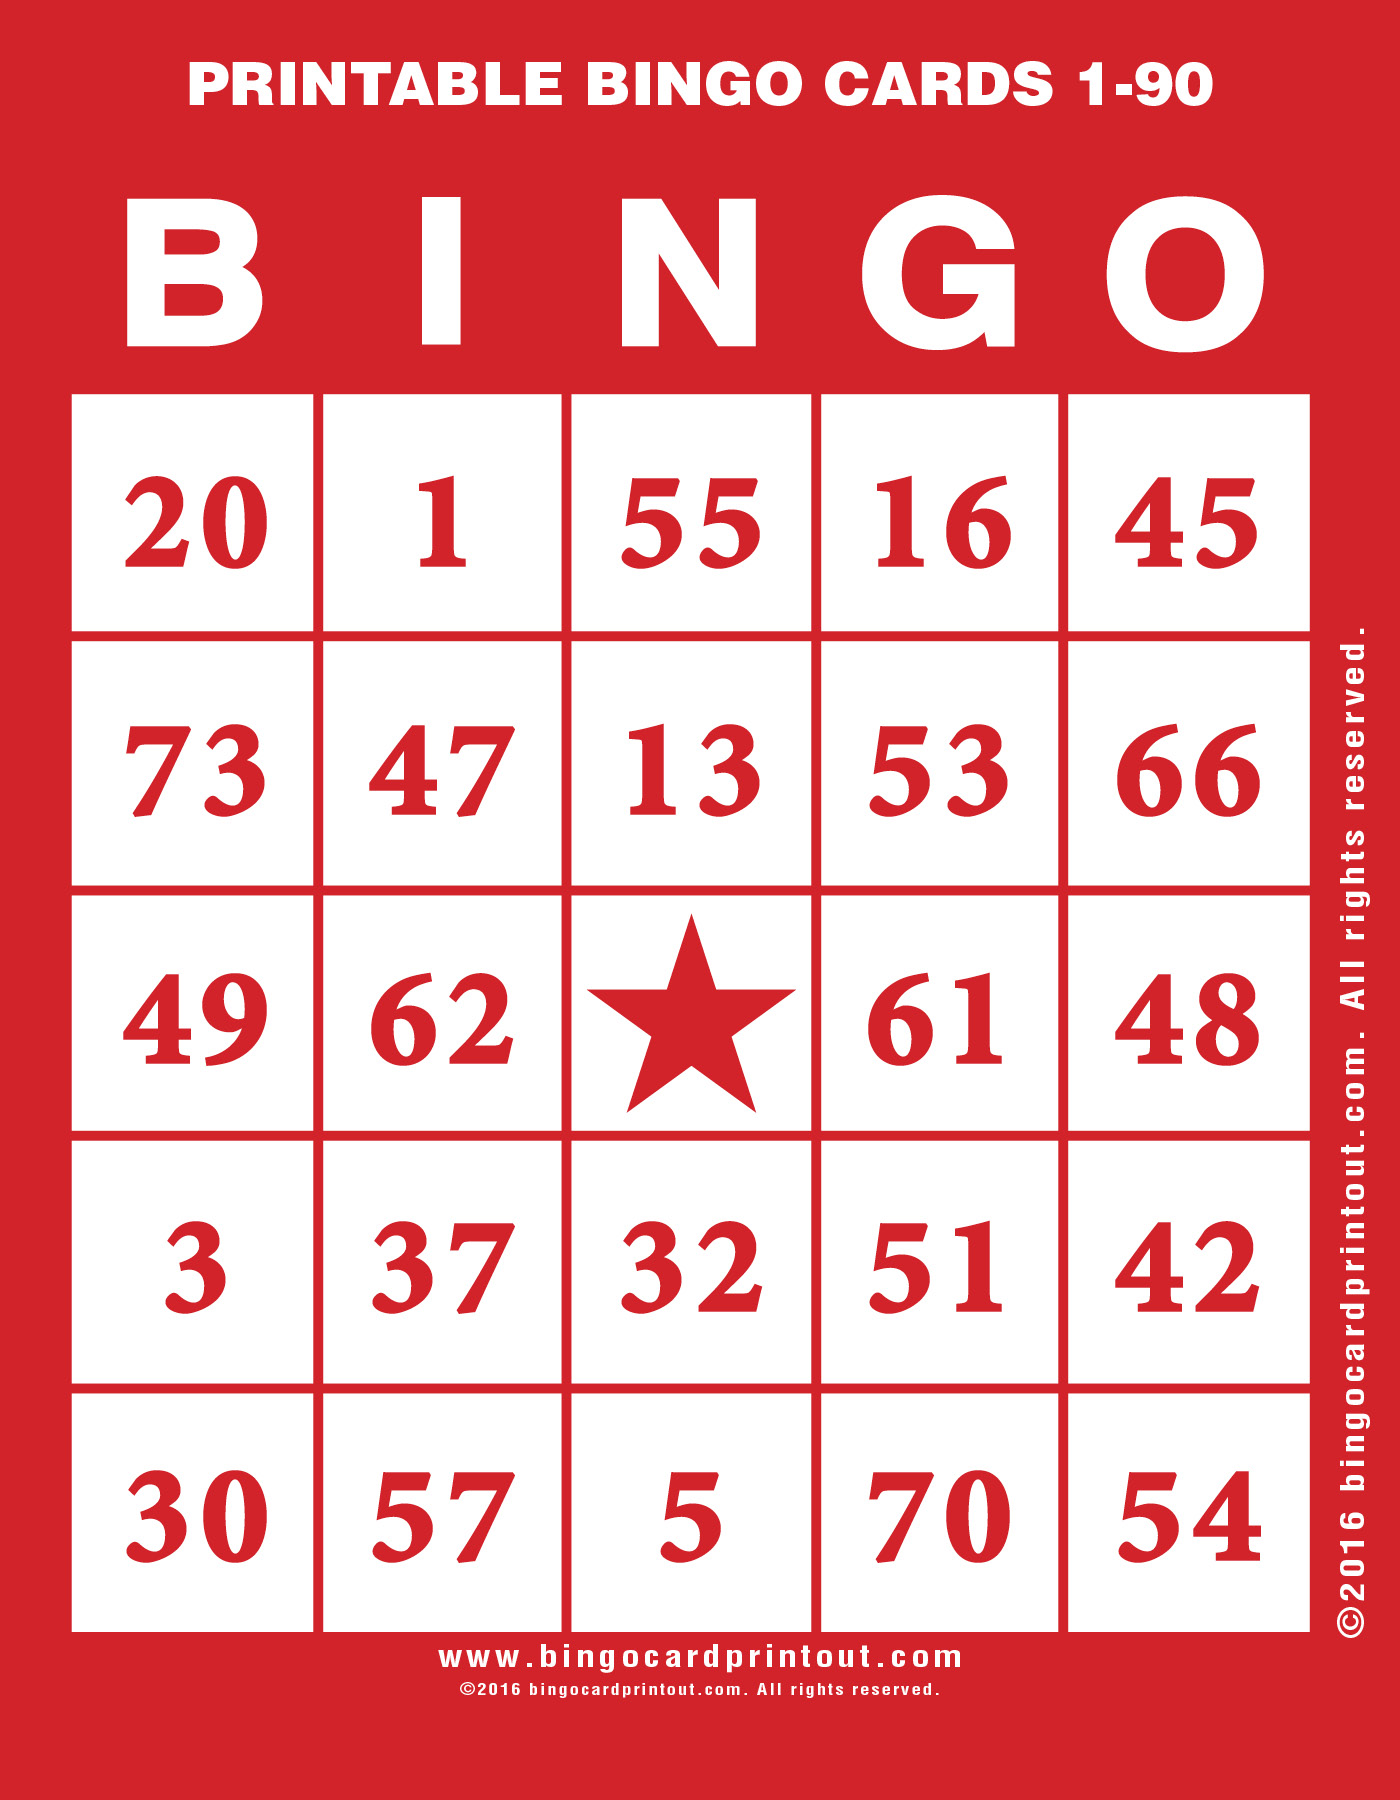 graphic about Printable Bingo Cards 1-90 titled Printable Bingo Playing cards 1-90 -